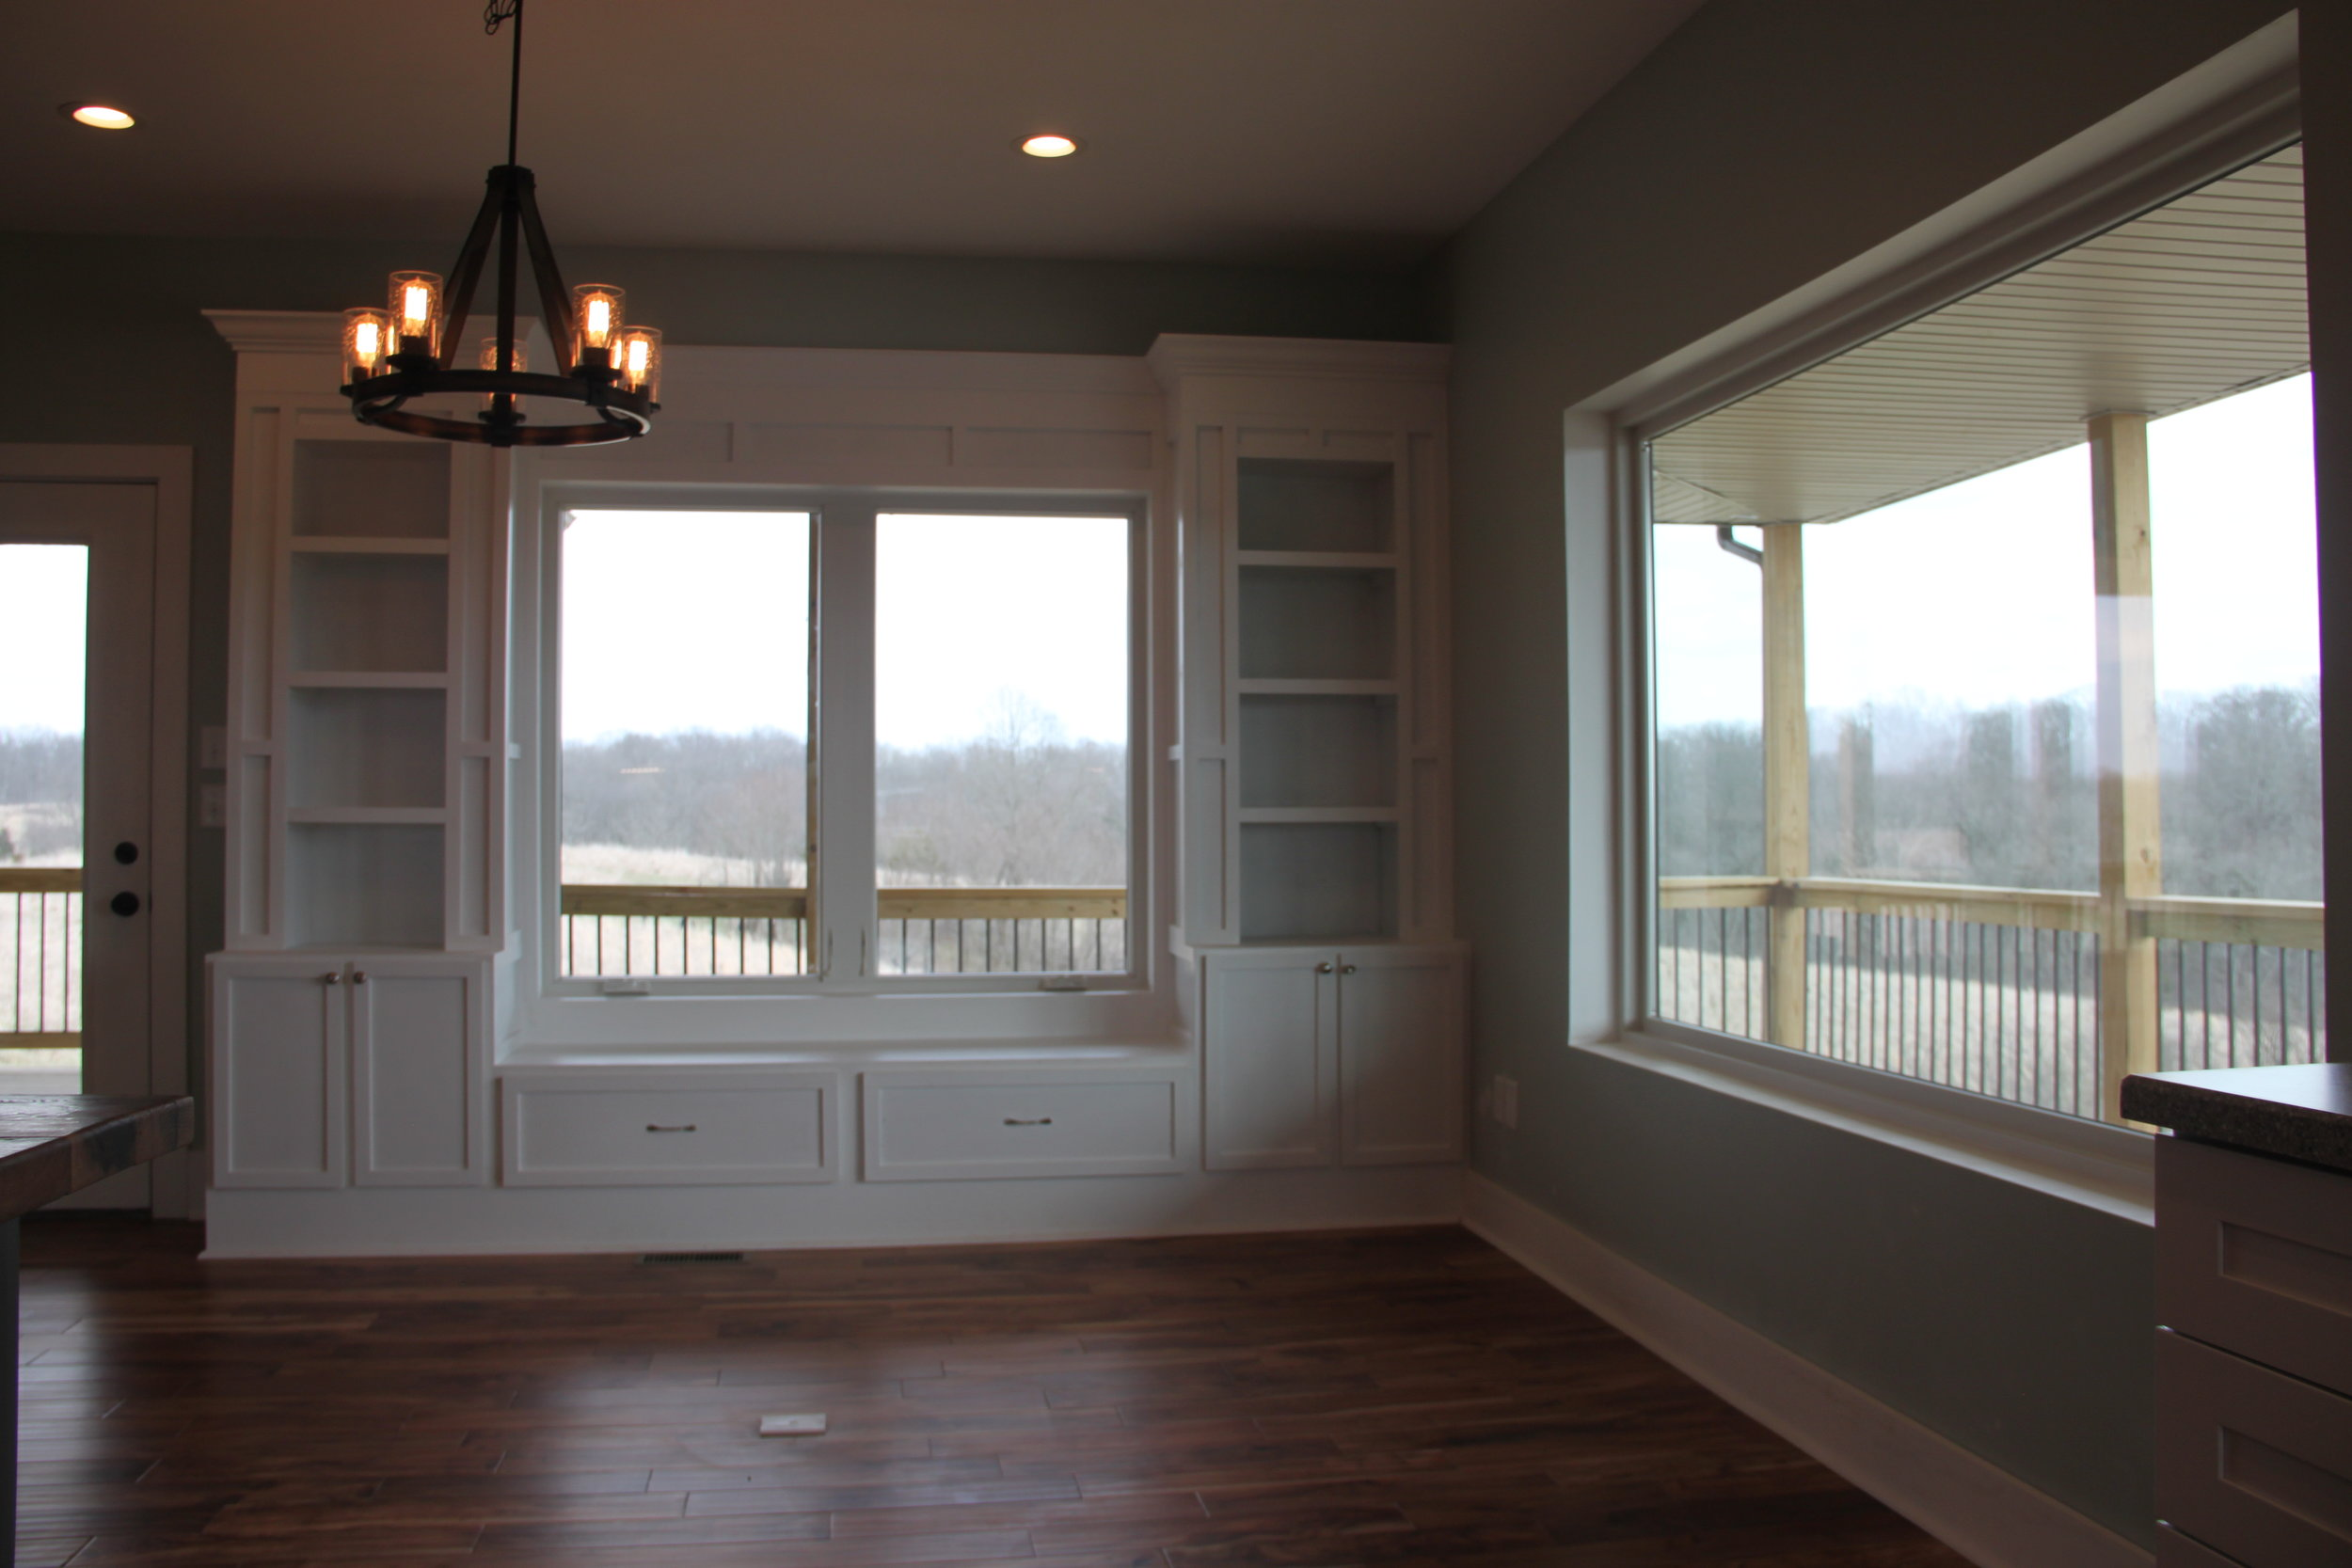 The dining room features a built in bookcase with a bench seat, and grand windows for the ultimate view while dining.